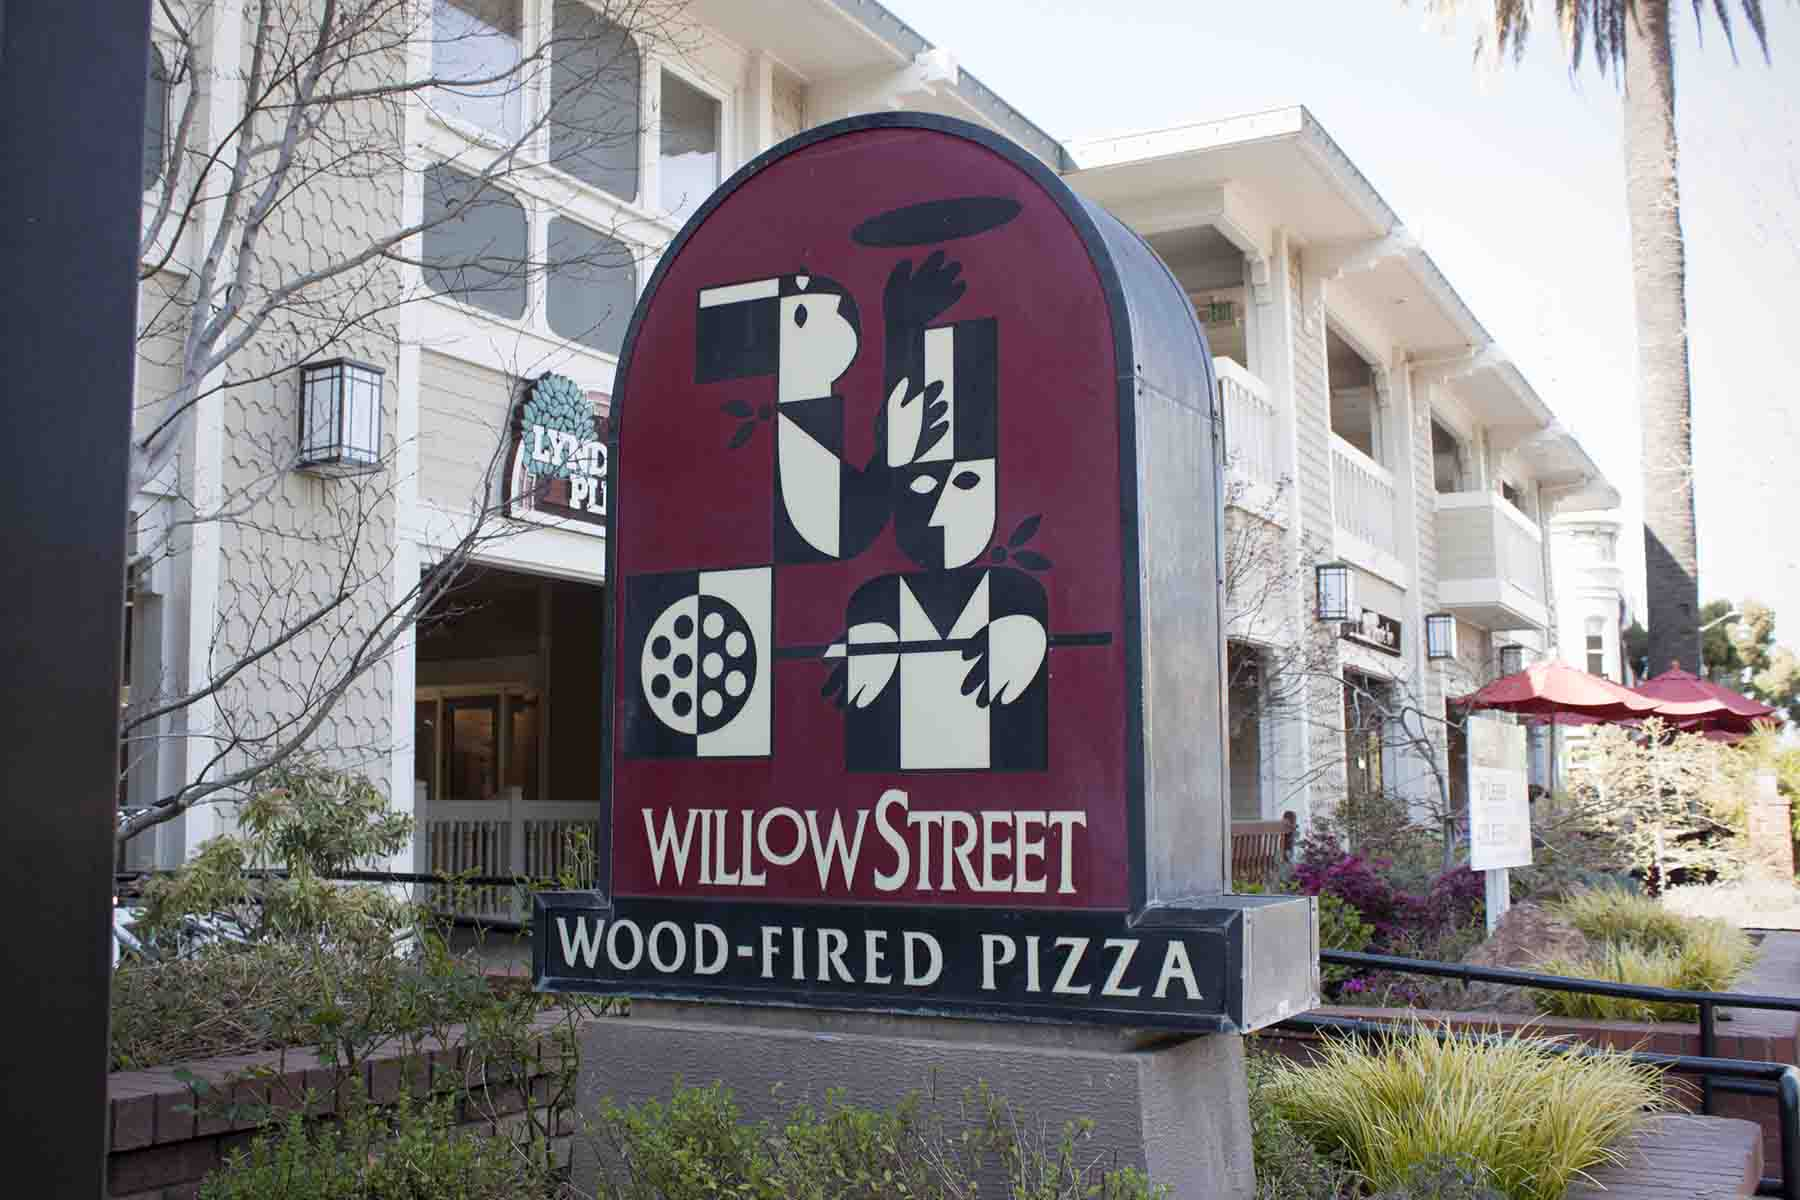 Willow Street